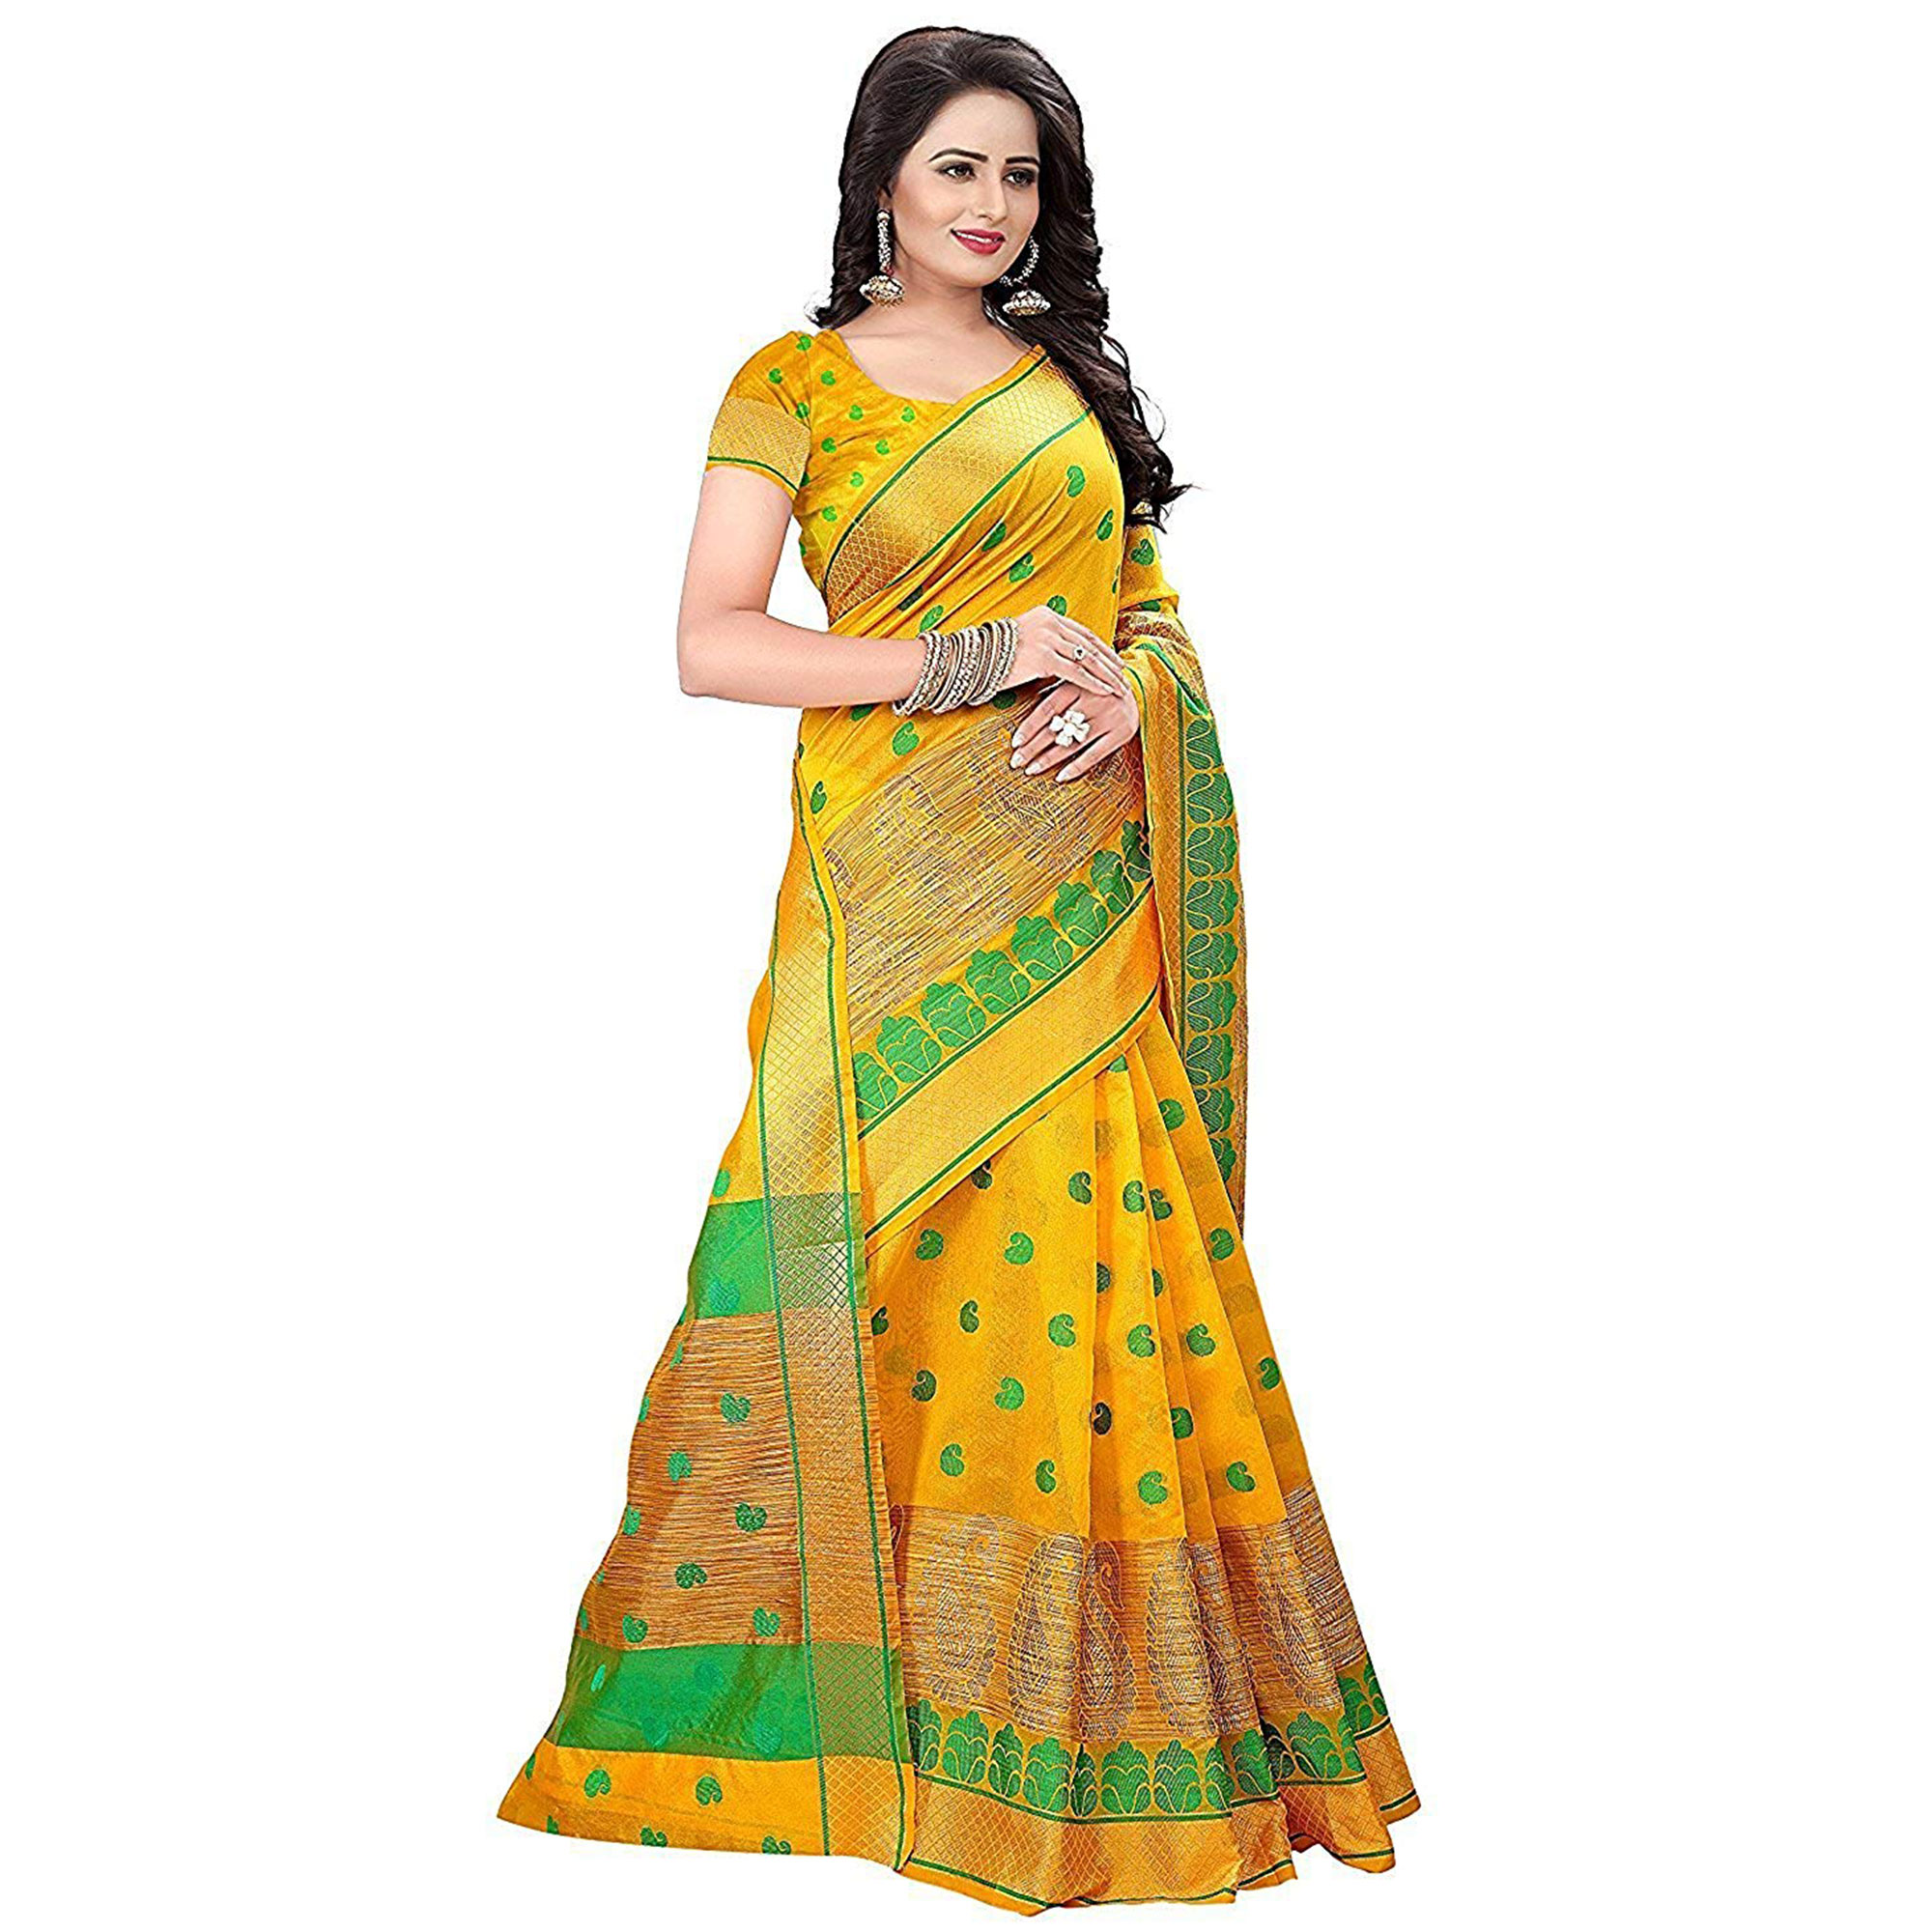 Glowing Yellow Colored Festive Wear Woven Cotton Saree